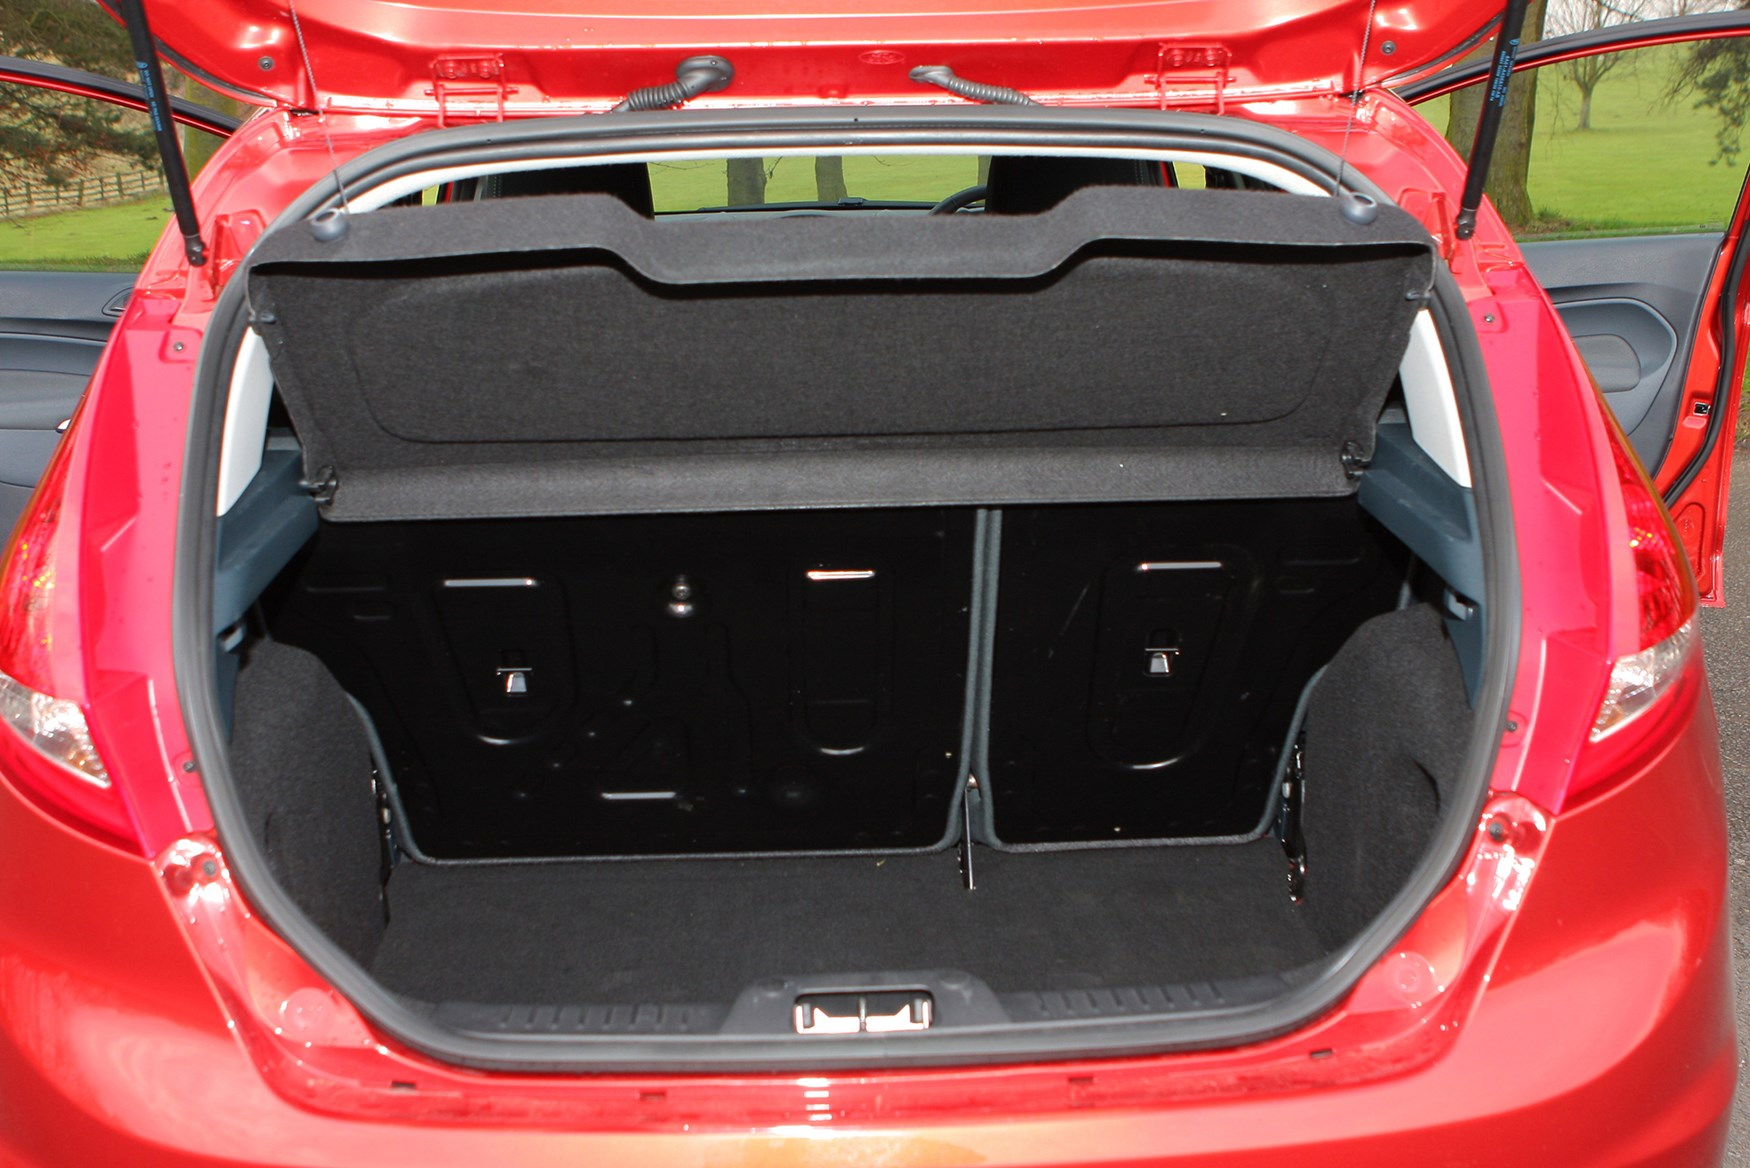 Ford Fiesta Hatchback 2008 Features Equipment And